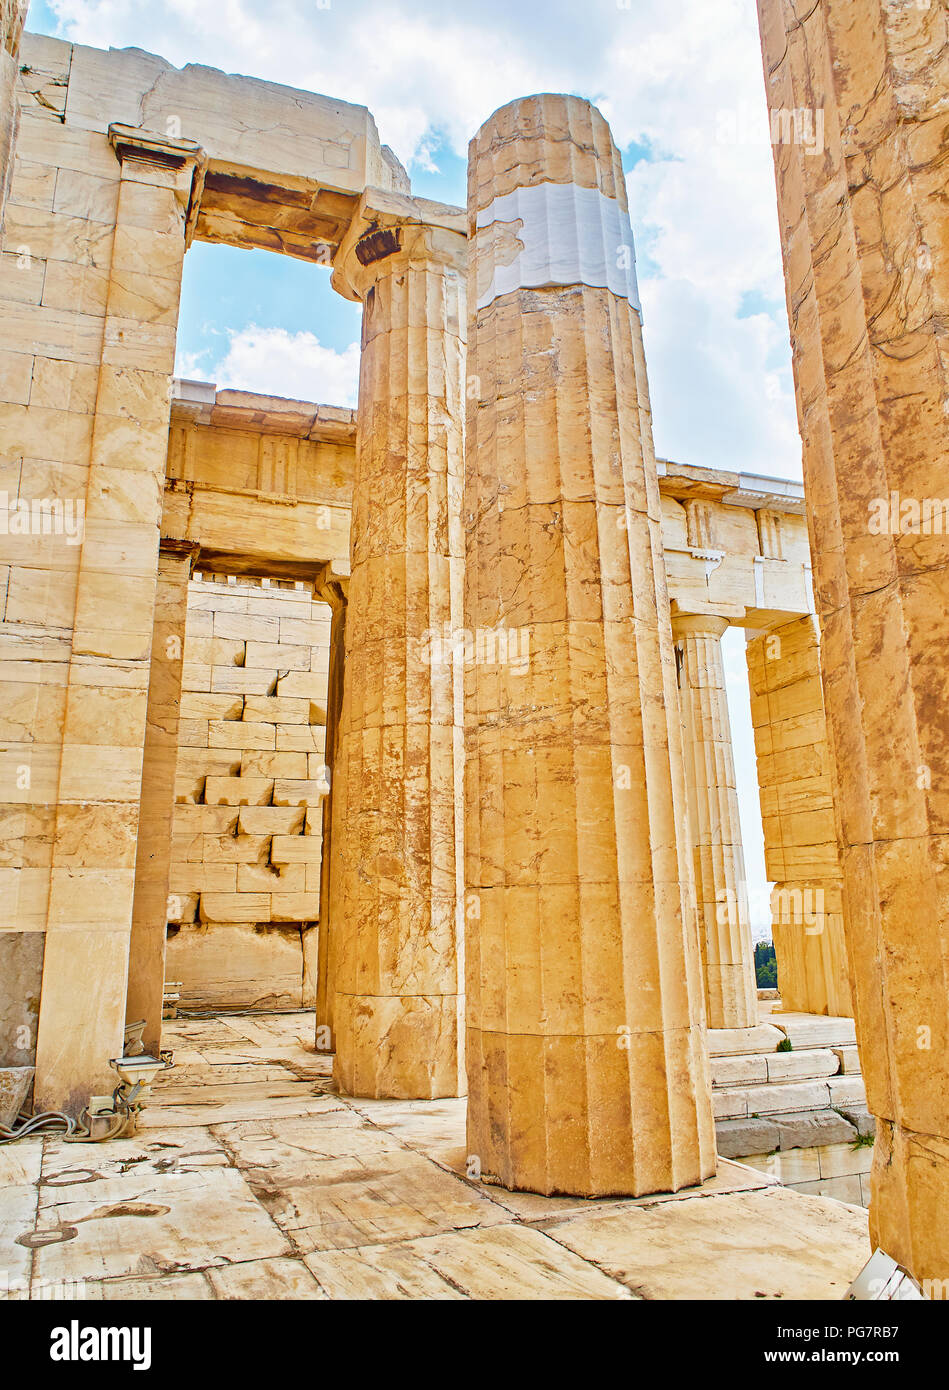 Doric columns of the western facade of Propylaea, the ancient gateway to the Athenian Acropolis. Athens. Attica, Greece. - Stock Image